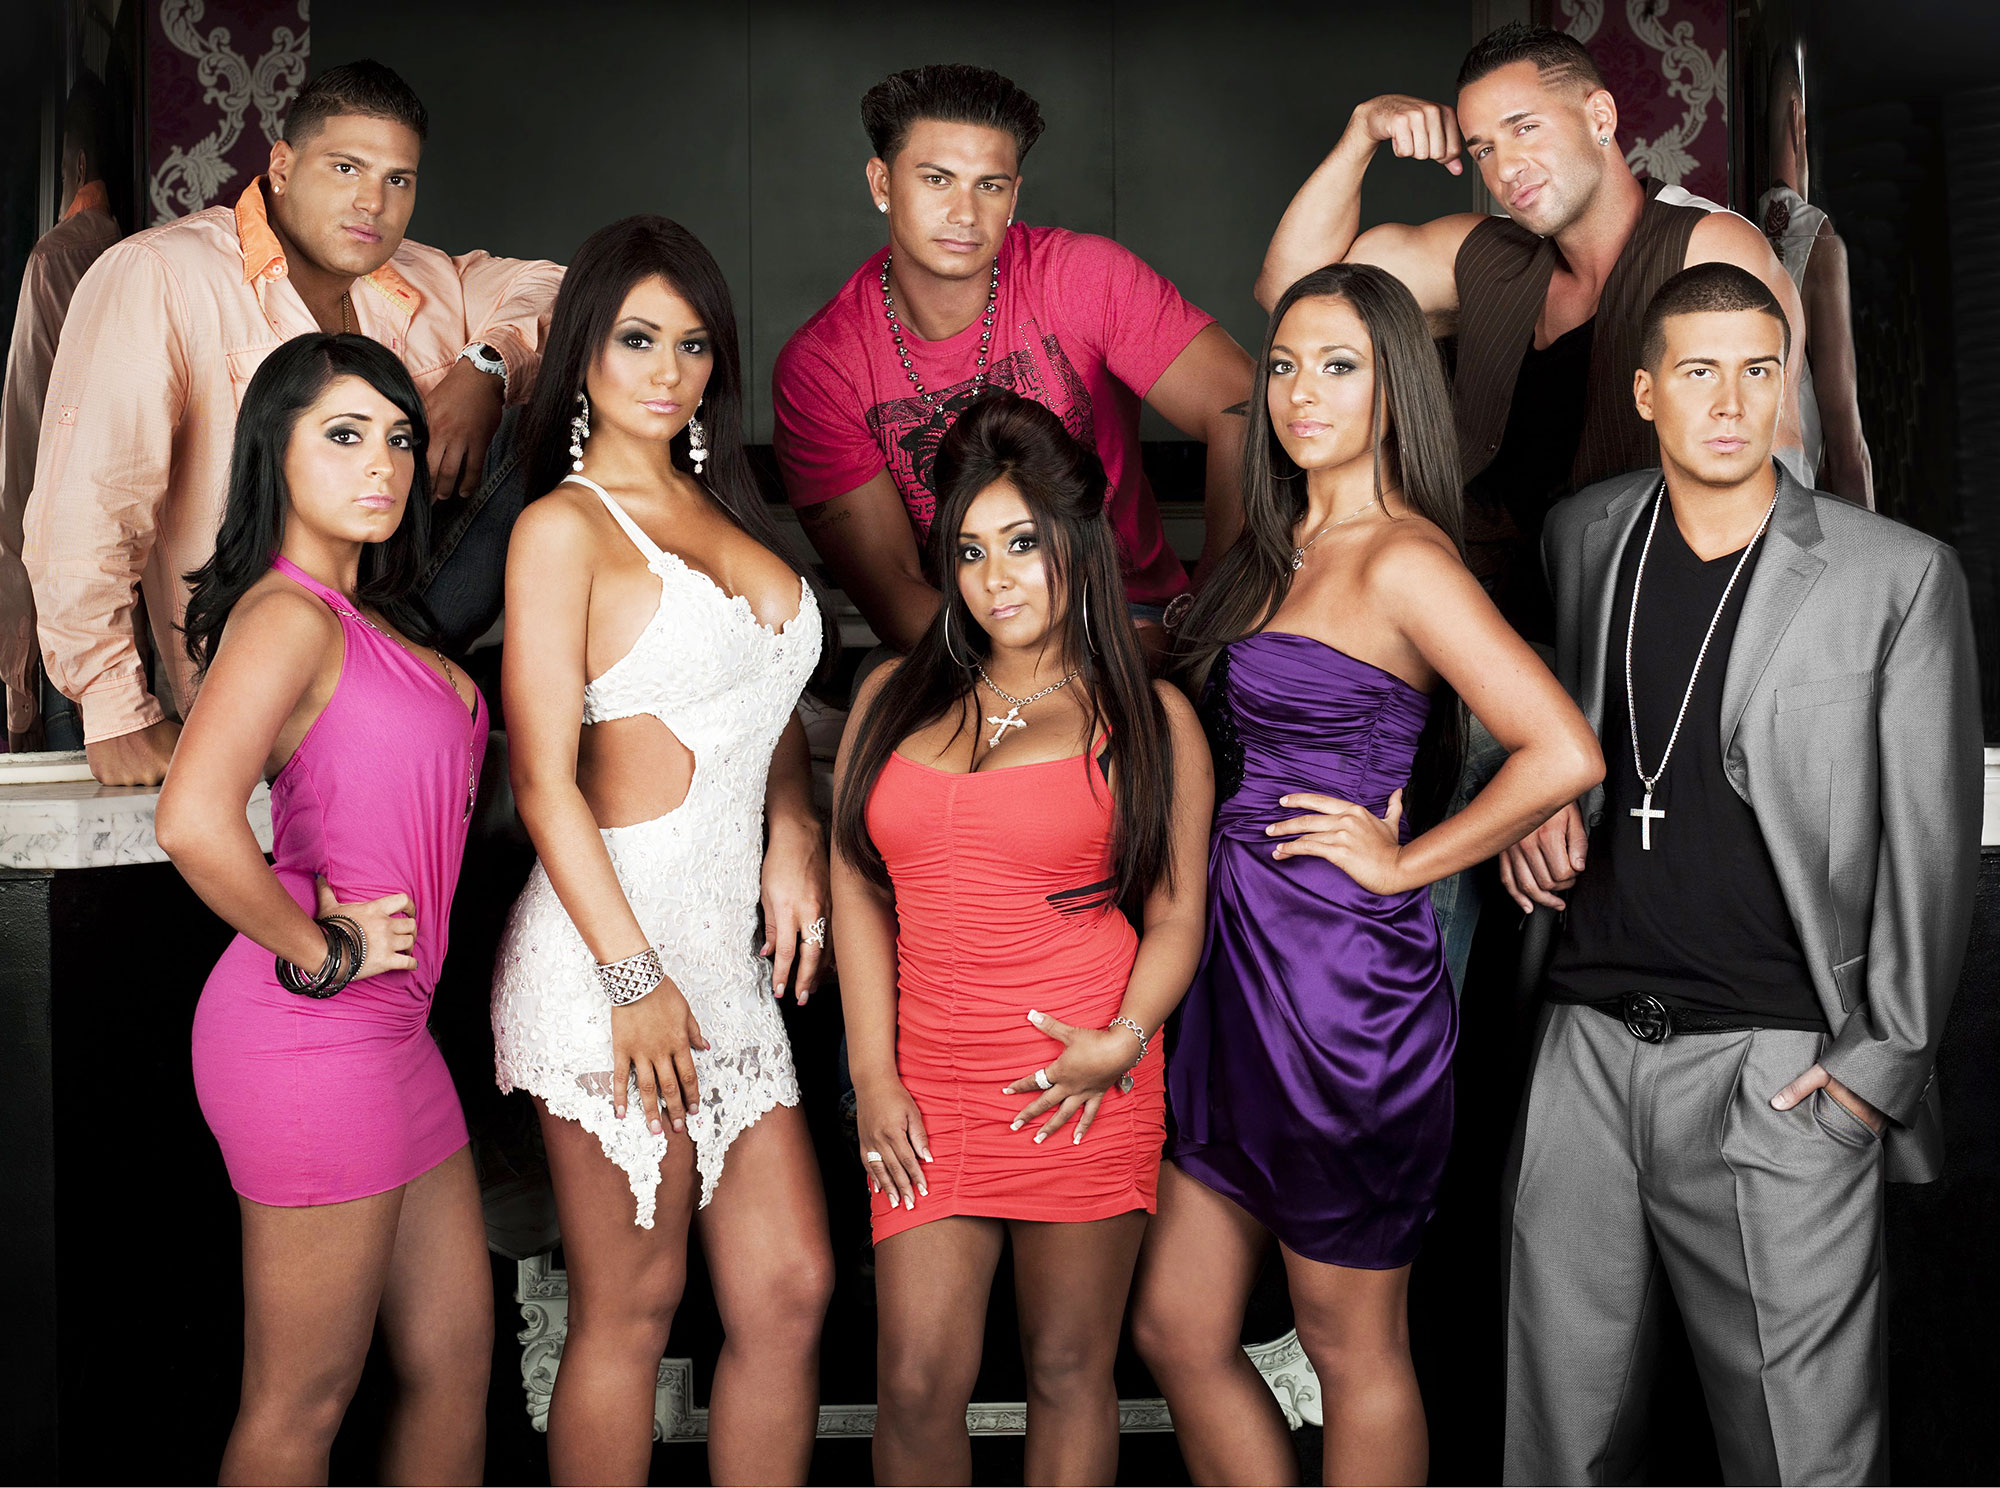 The Cast of Jersey Shore in 2009